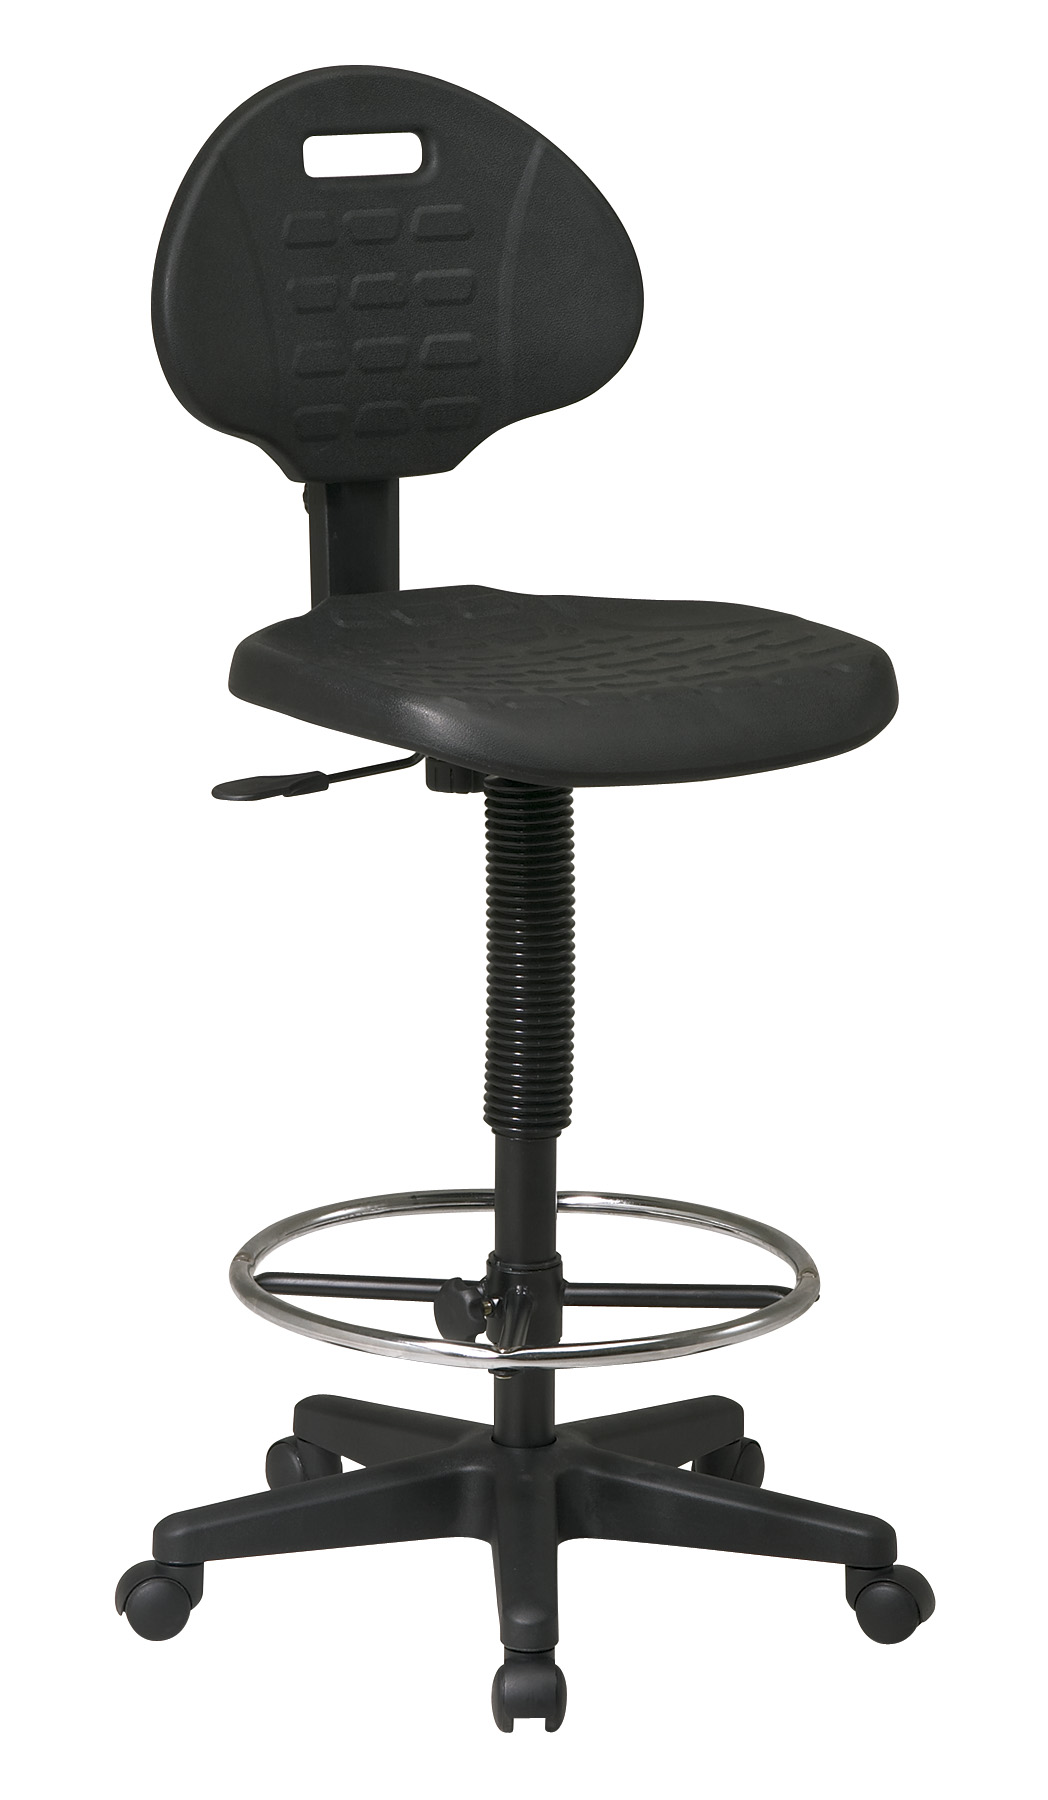 Adjustable Drafting Chair Office Star Drafting Chair With Adjustable Footrest By Oj